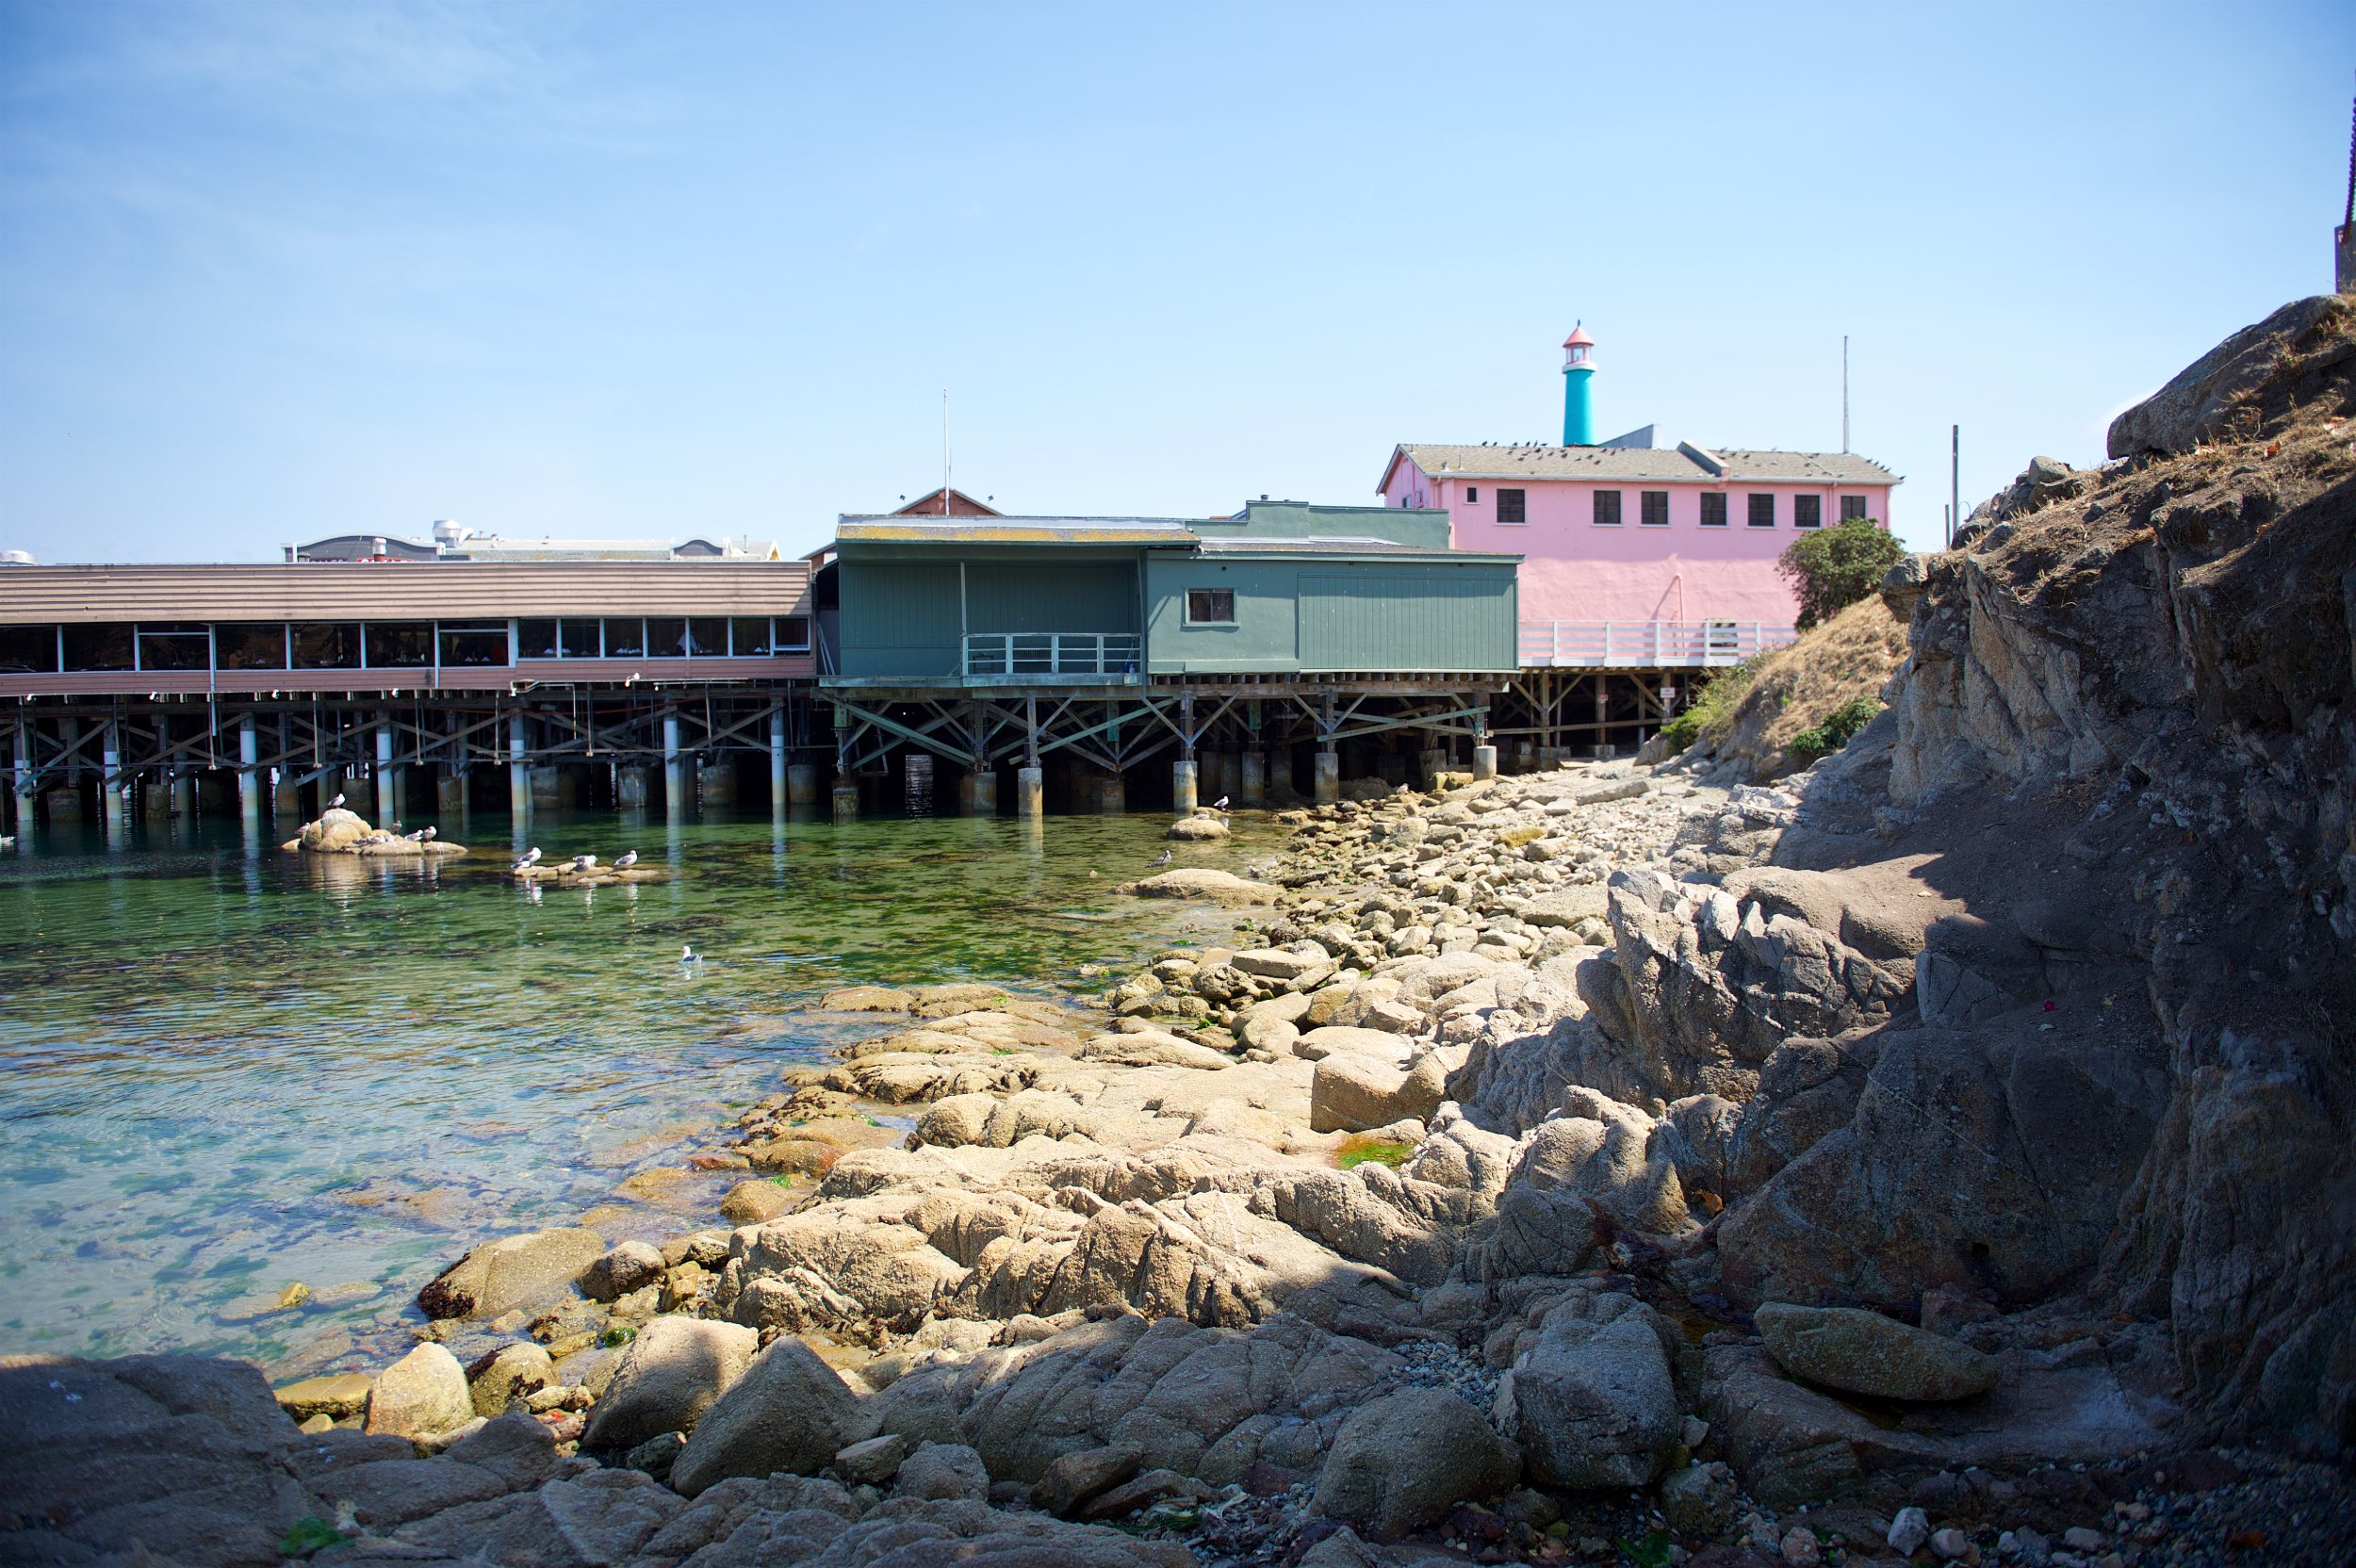 old-whaling-station-and-surrounds-2016-08-26-014.jpg